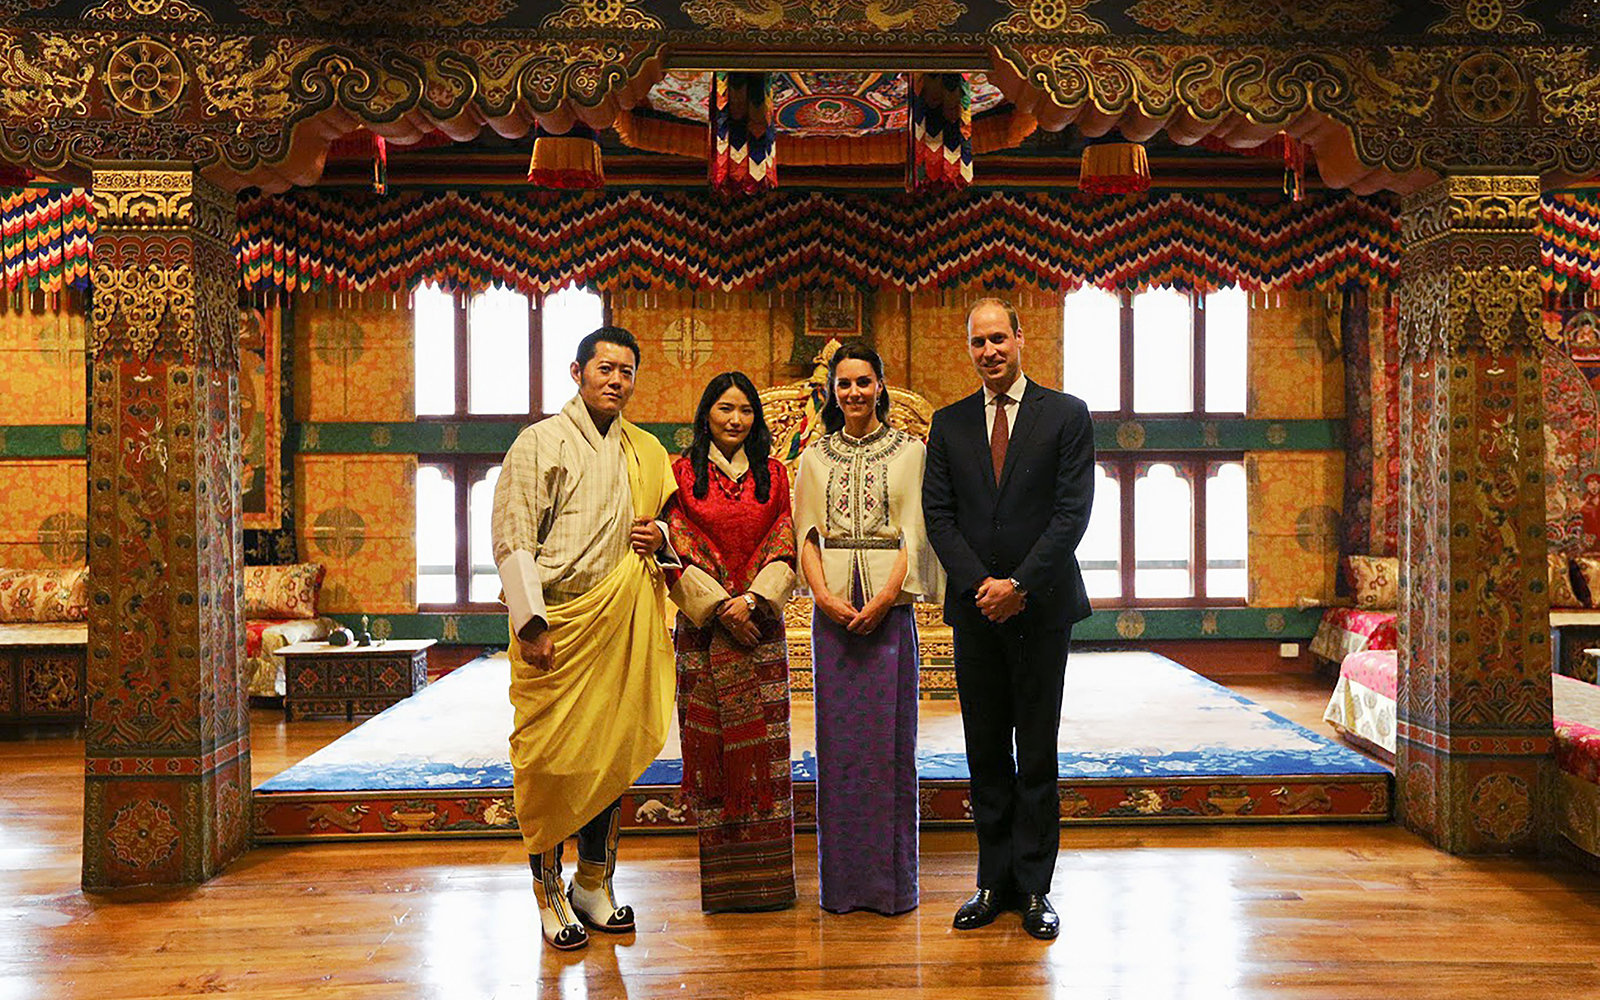 CORRECTION - In this handout photograph released by the Royal Office for Media Bhutan on April 14, 2016, Britain's Prince William (R), Duke of Cambridge, and his wife Catherine (2nd R), Duchess of Cambridge, pose with Bhutan's King Jigme Khesar Namgyel Wa